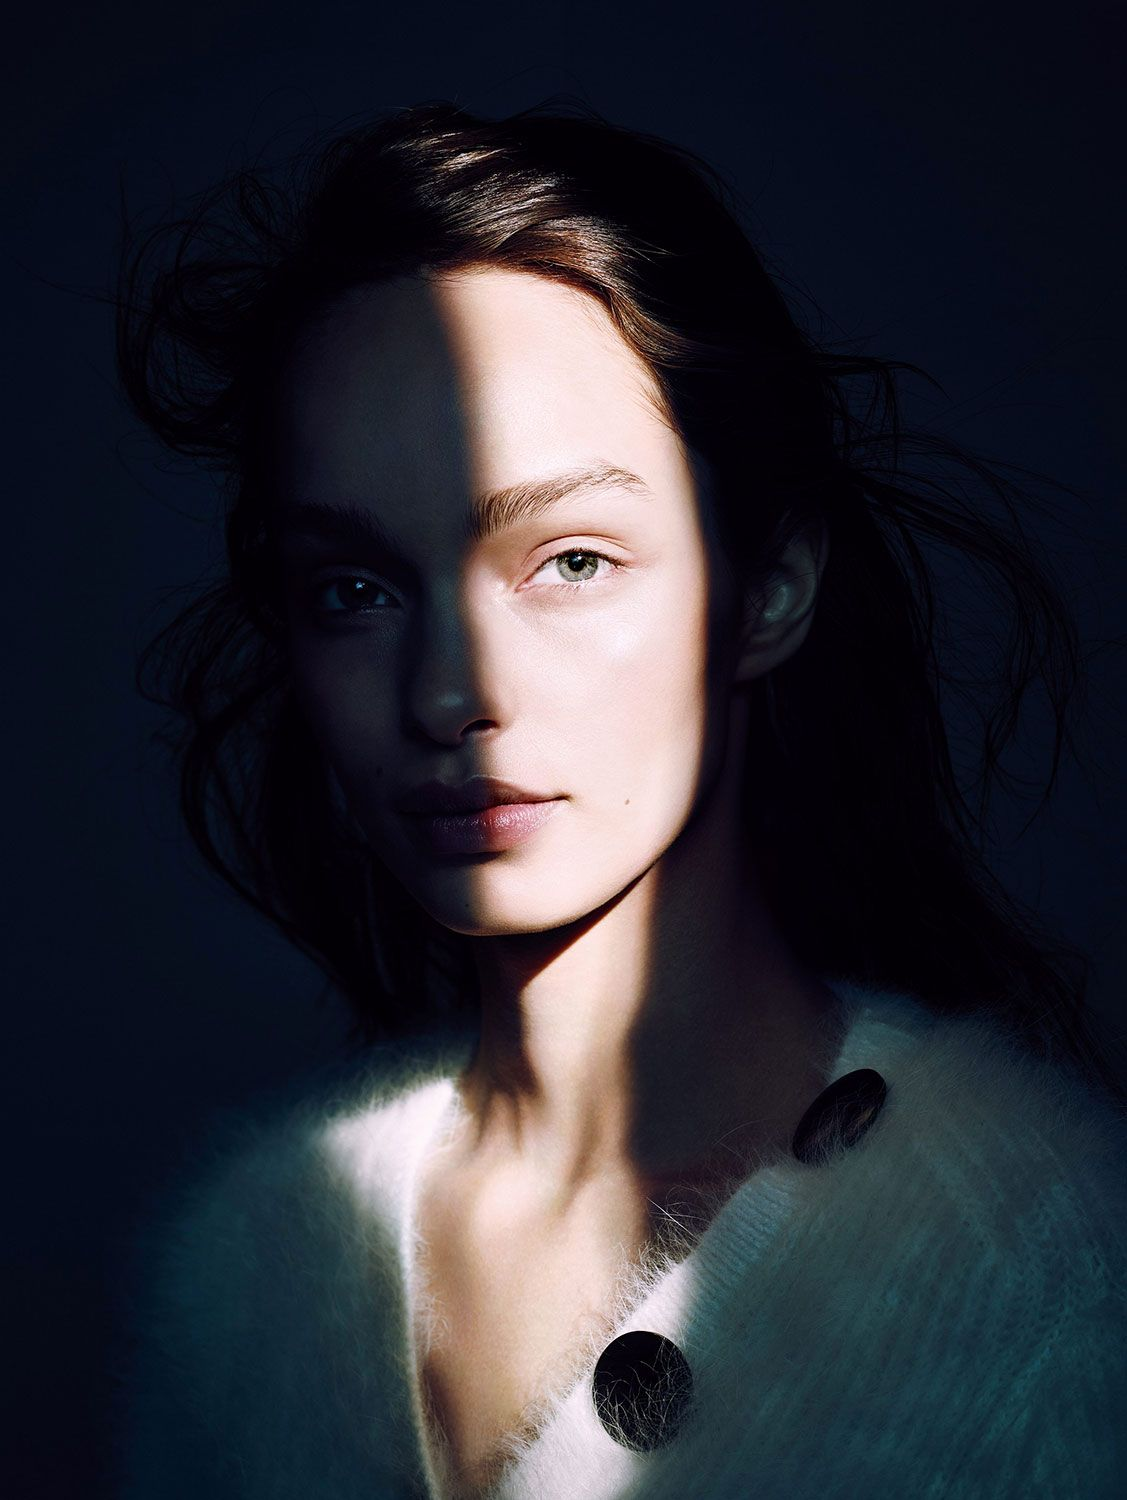 luma-grothe-by-eric-traorc3a9-for-madame-figaro-october-2015-9.jpg 1 127×1 500 pikseli